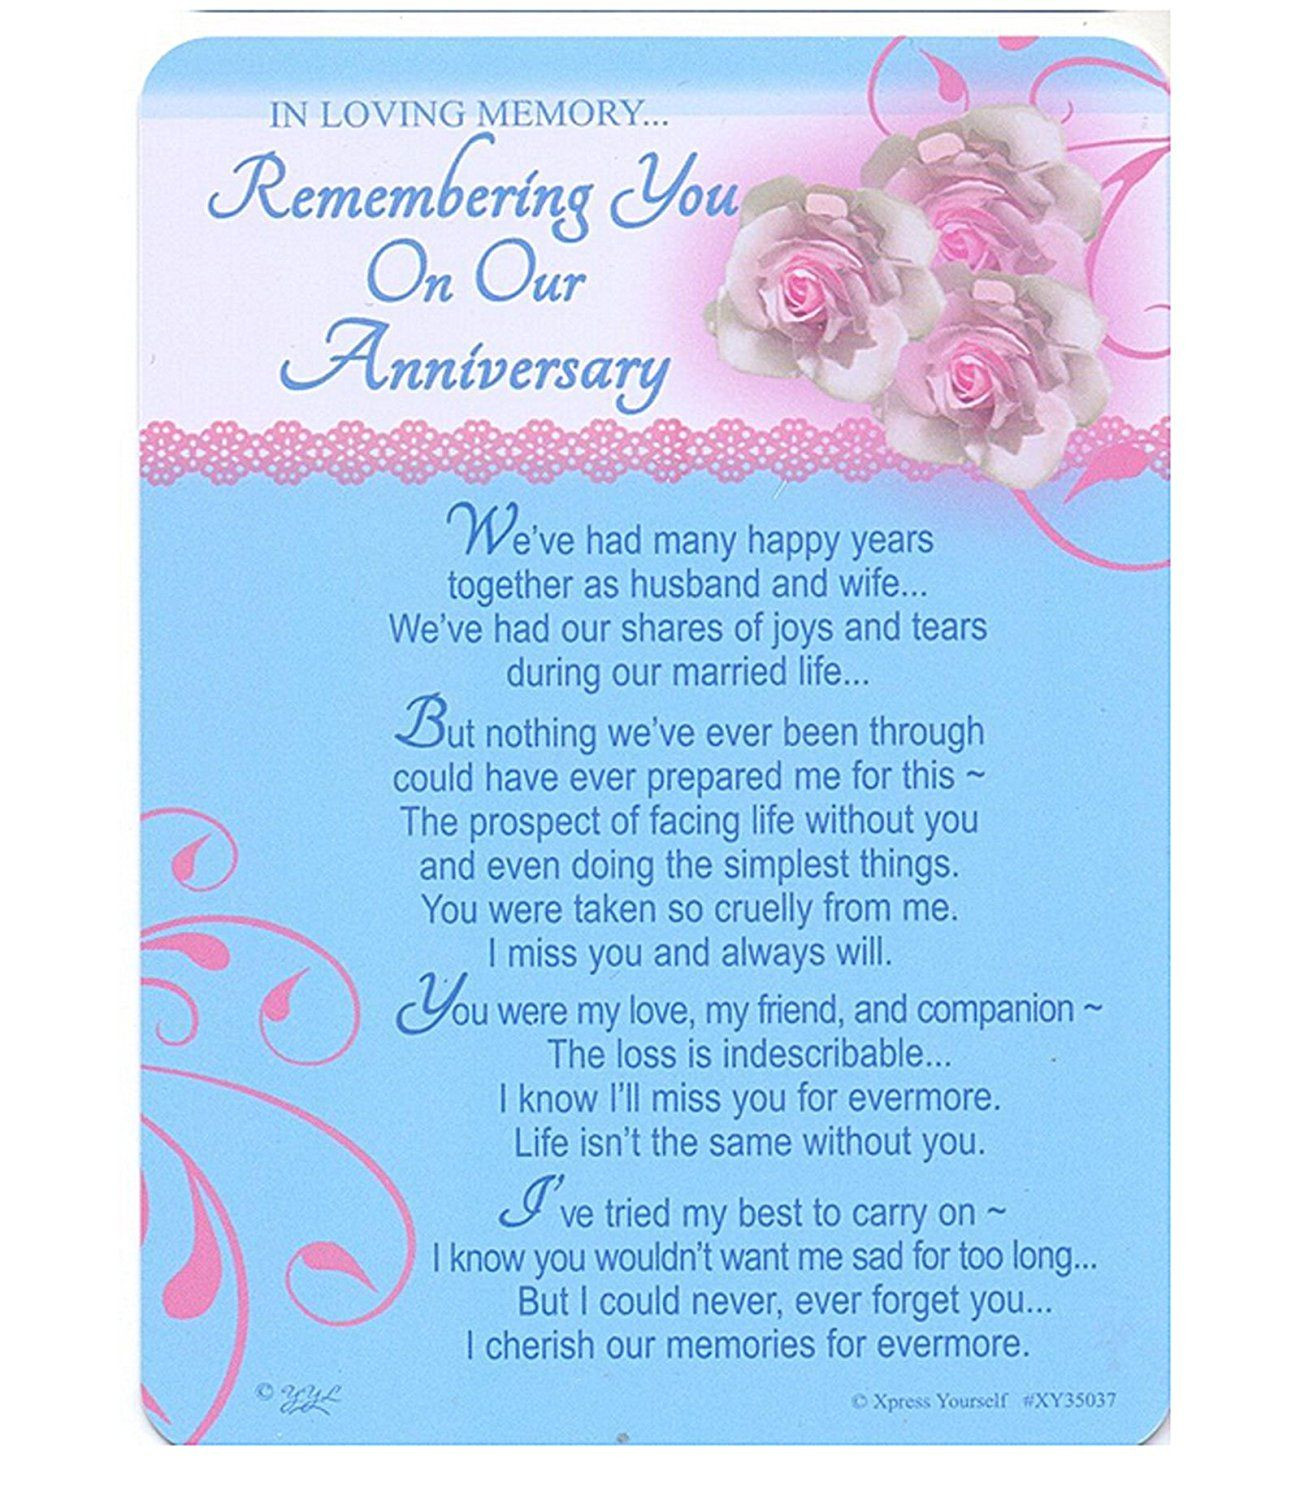 Wedding Anniversary After Death Of Spouse Quotes  Pin by Jsymonds on True